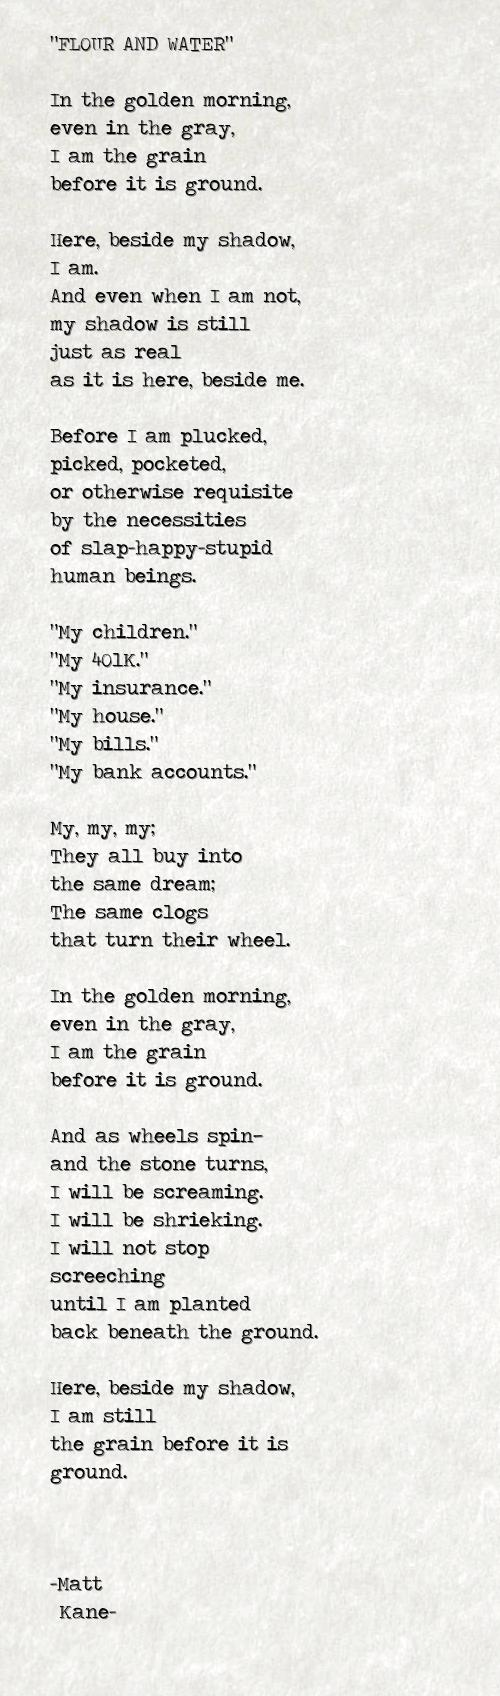 FLOUR AND WATER - a poem by Matt Kane